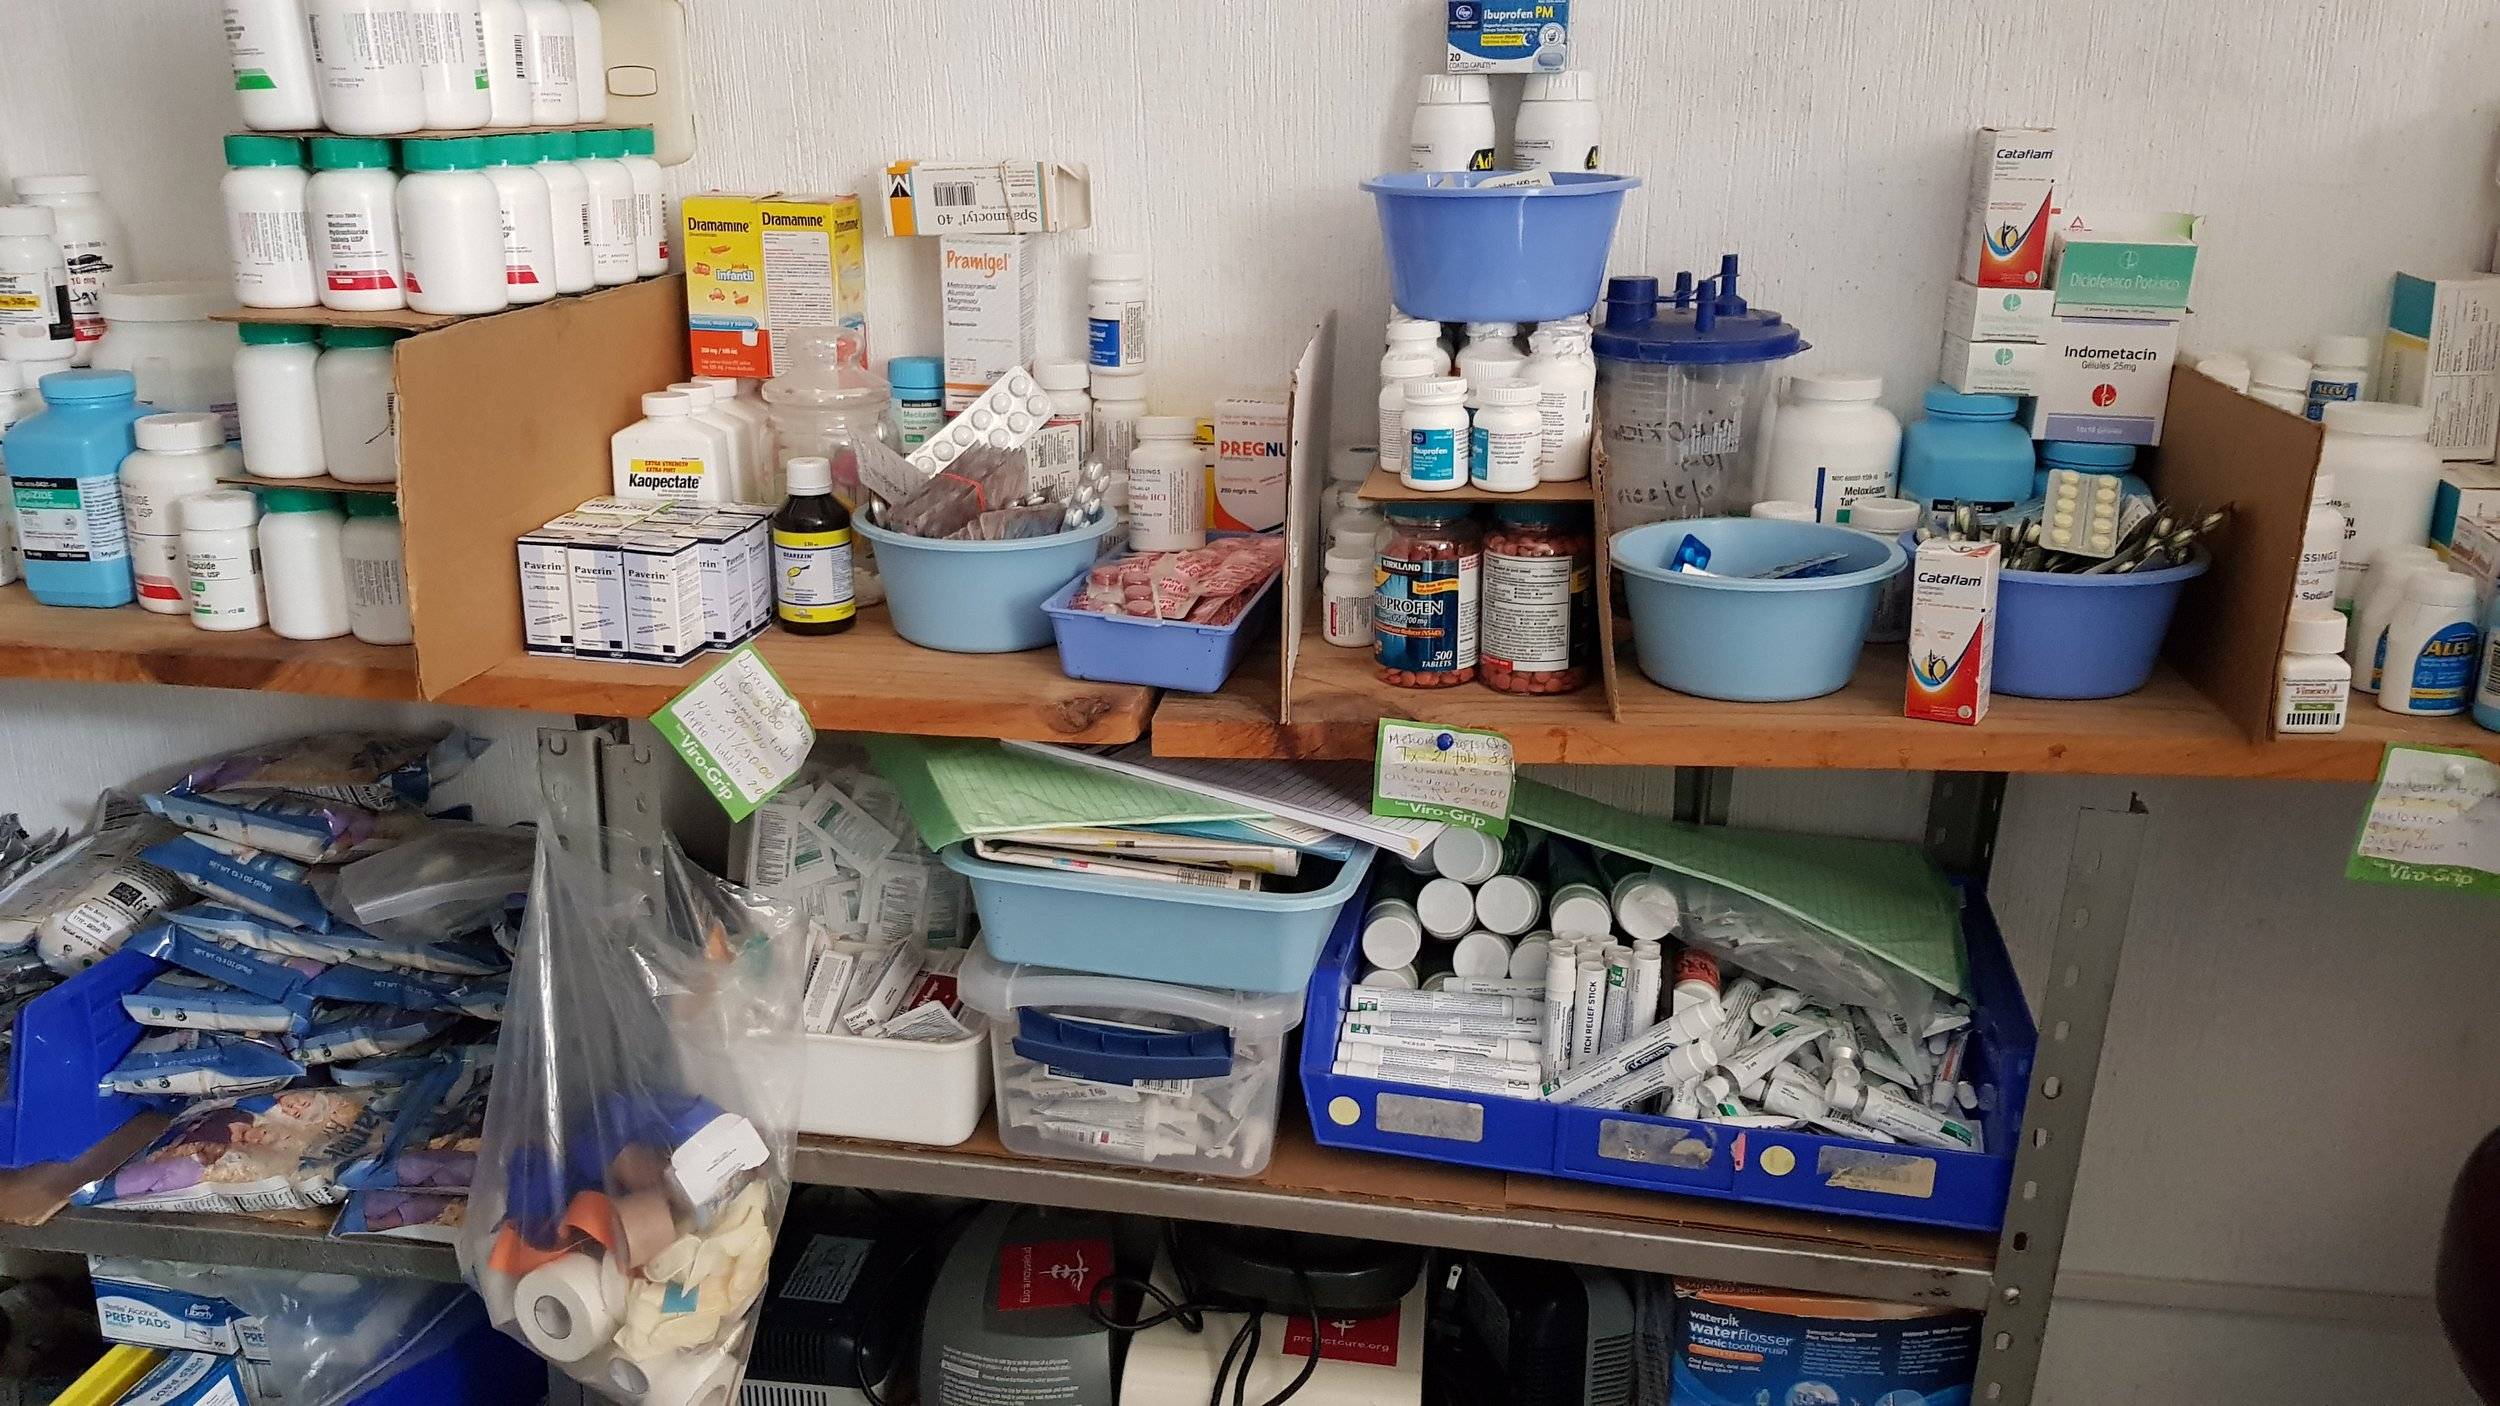 Medical supplies at a Health nonprofit is Sacatepequez, Guatemala